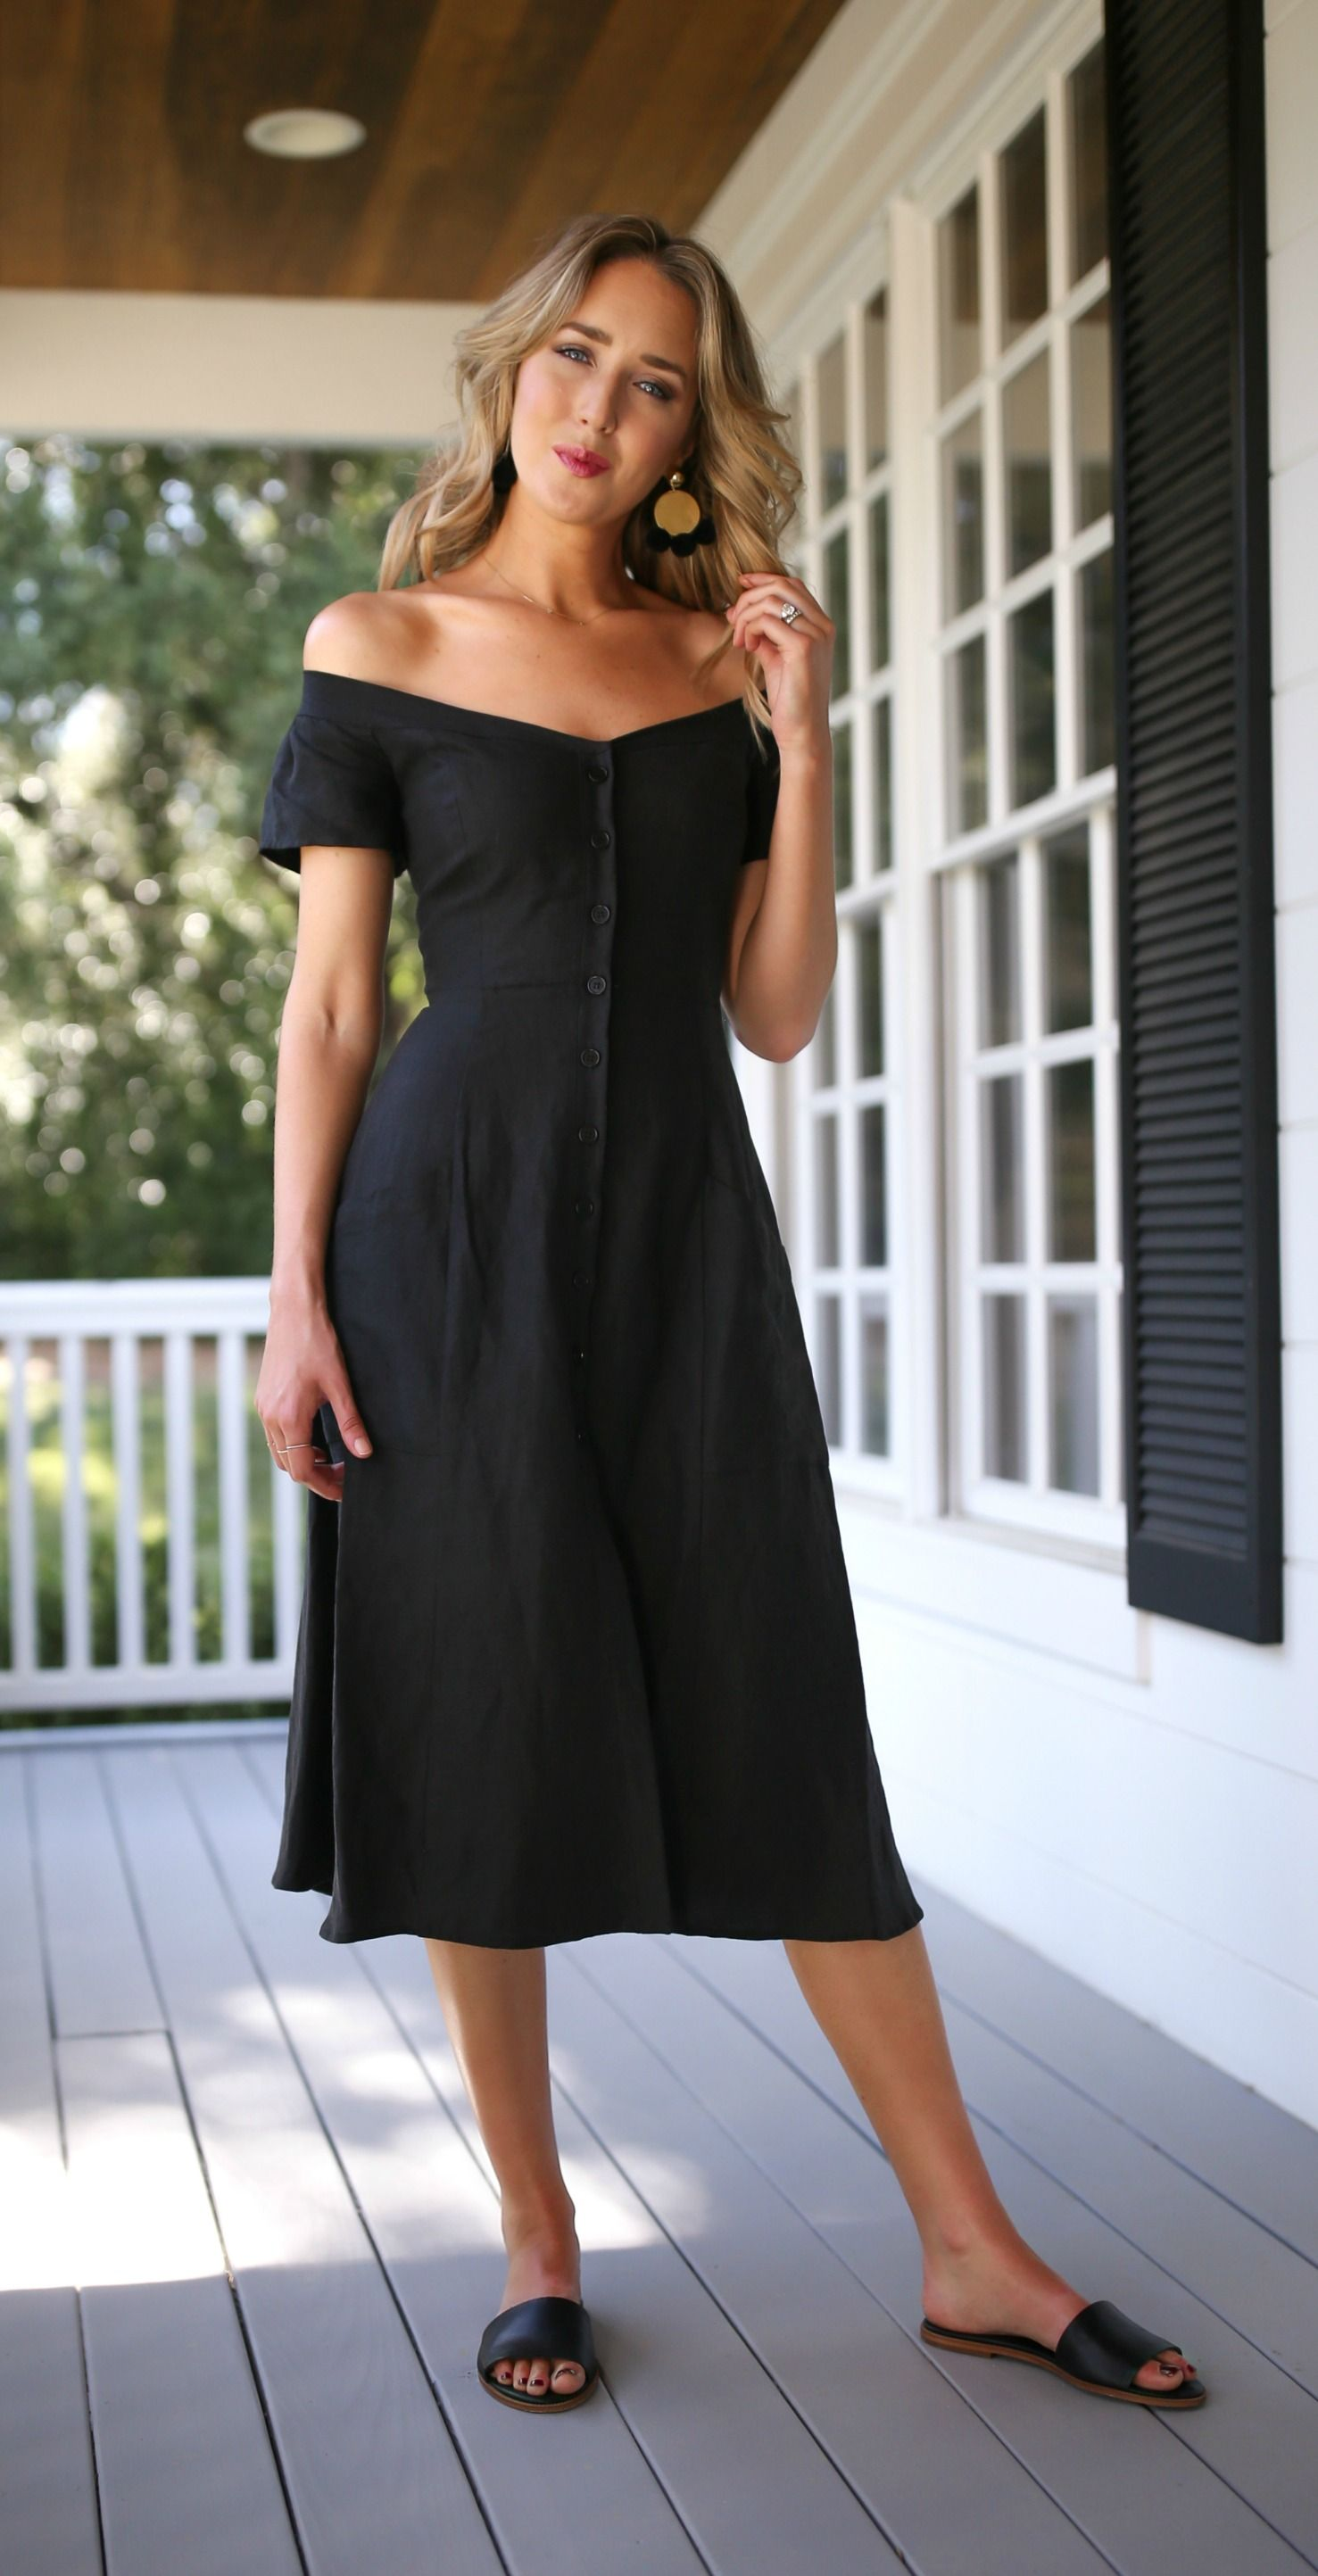 9f1a9b631d00 Weekend Style // Black linen off the shoulder midi dress, statement  earrings + black slides {reformation, elizabeth and james, hinge, classy,  casual, ...